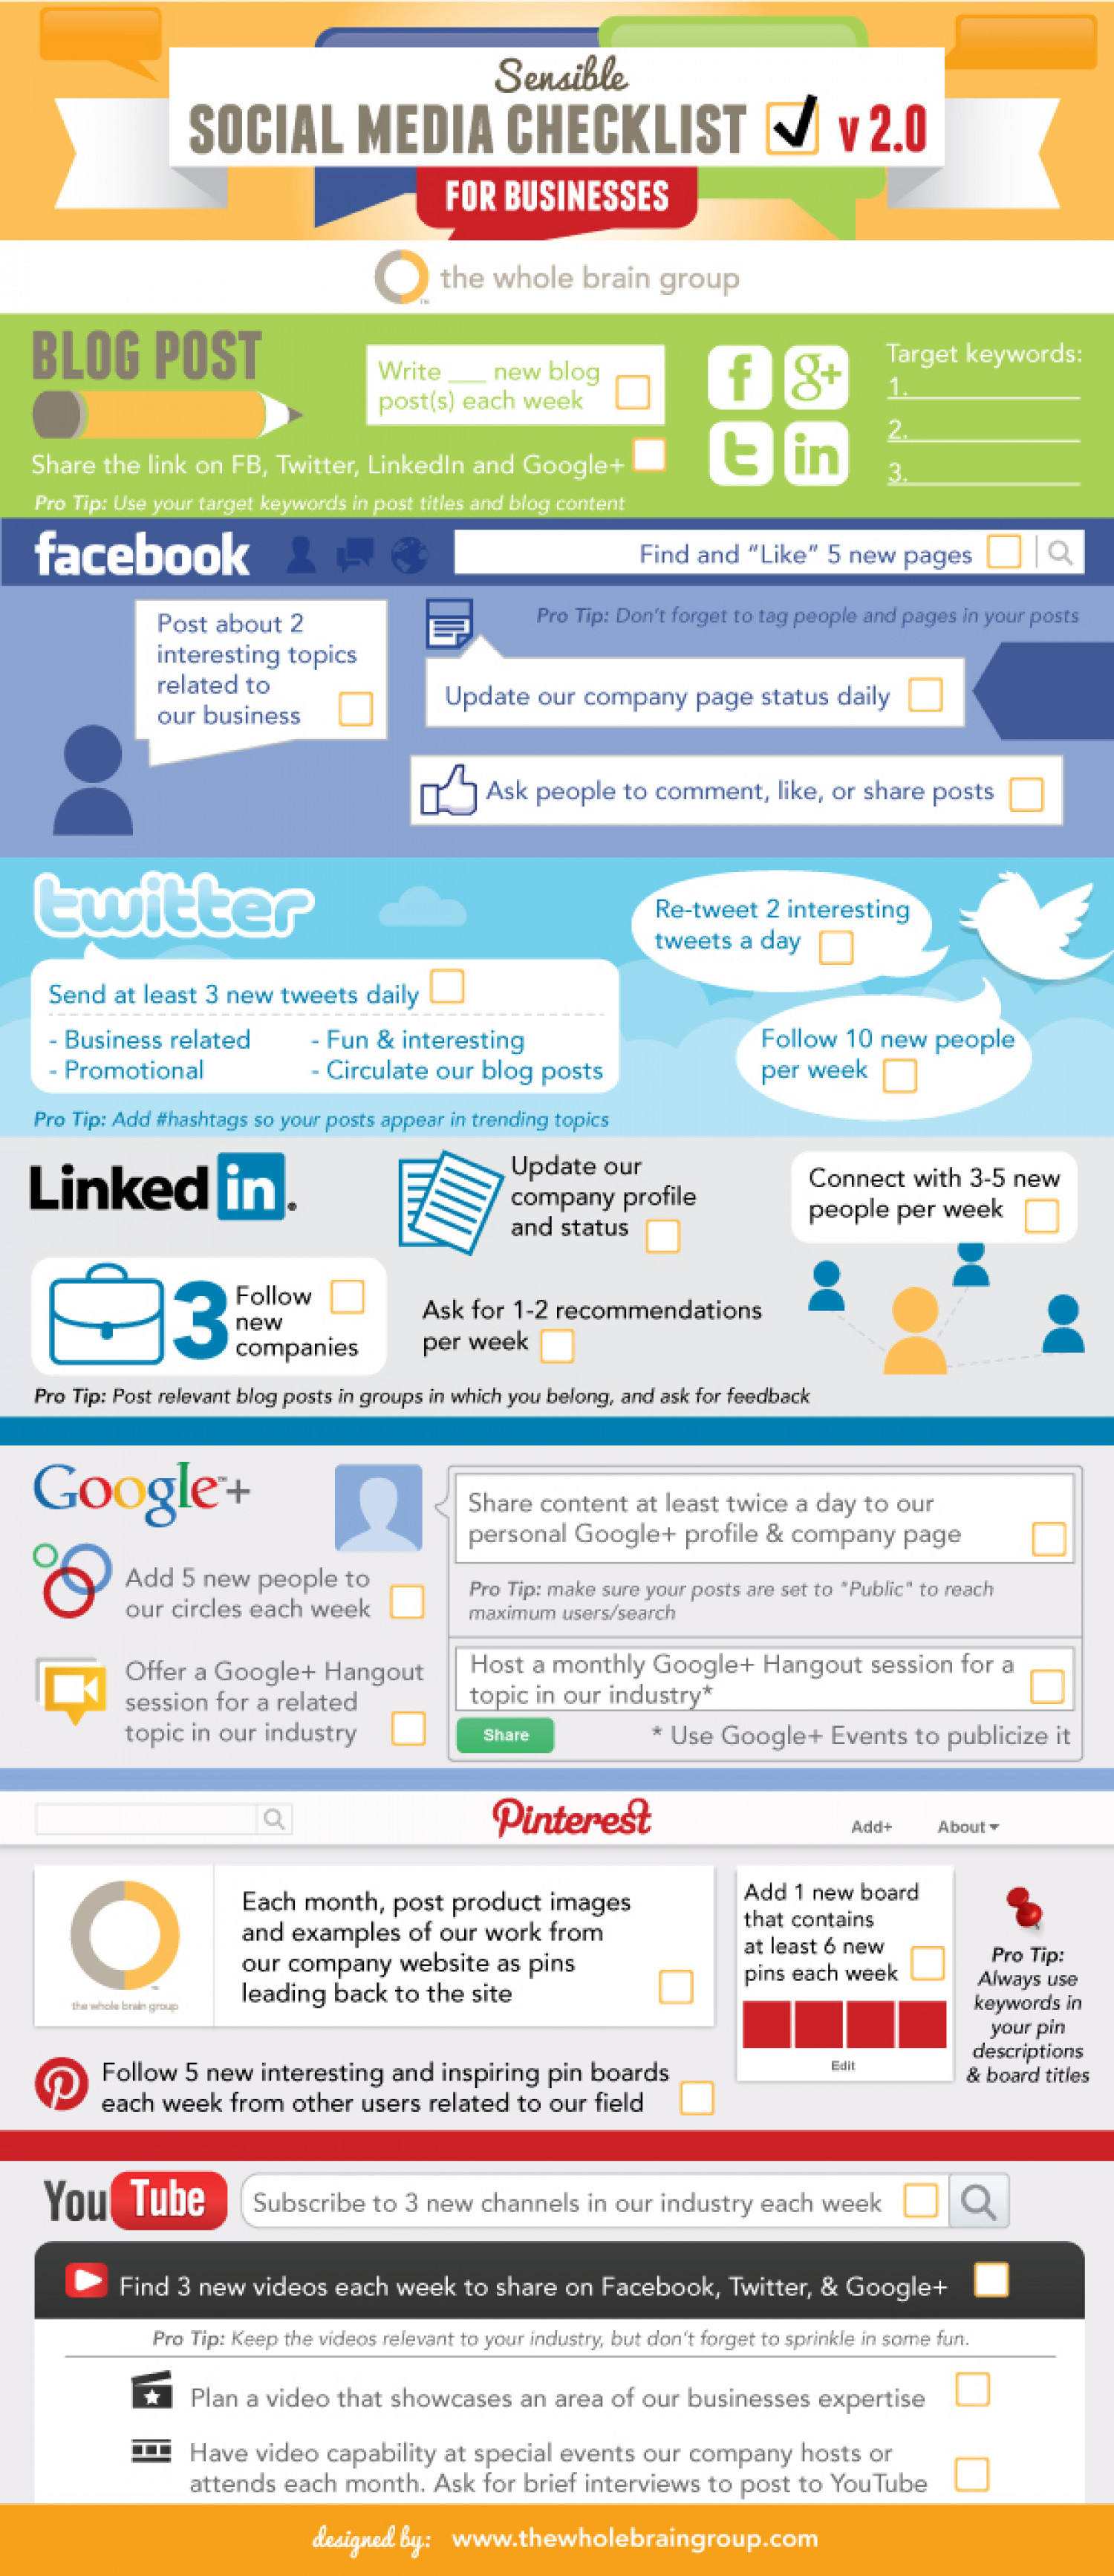 Social Media Checklist For Businesses Infographic